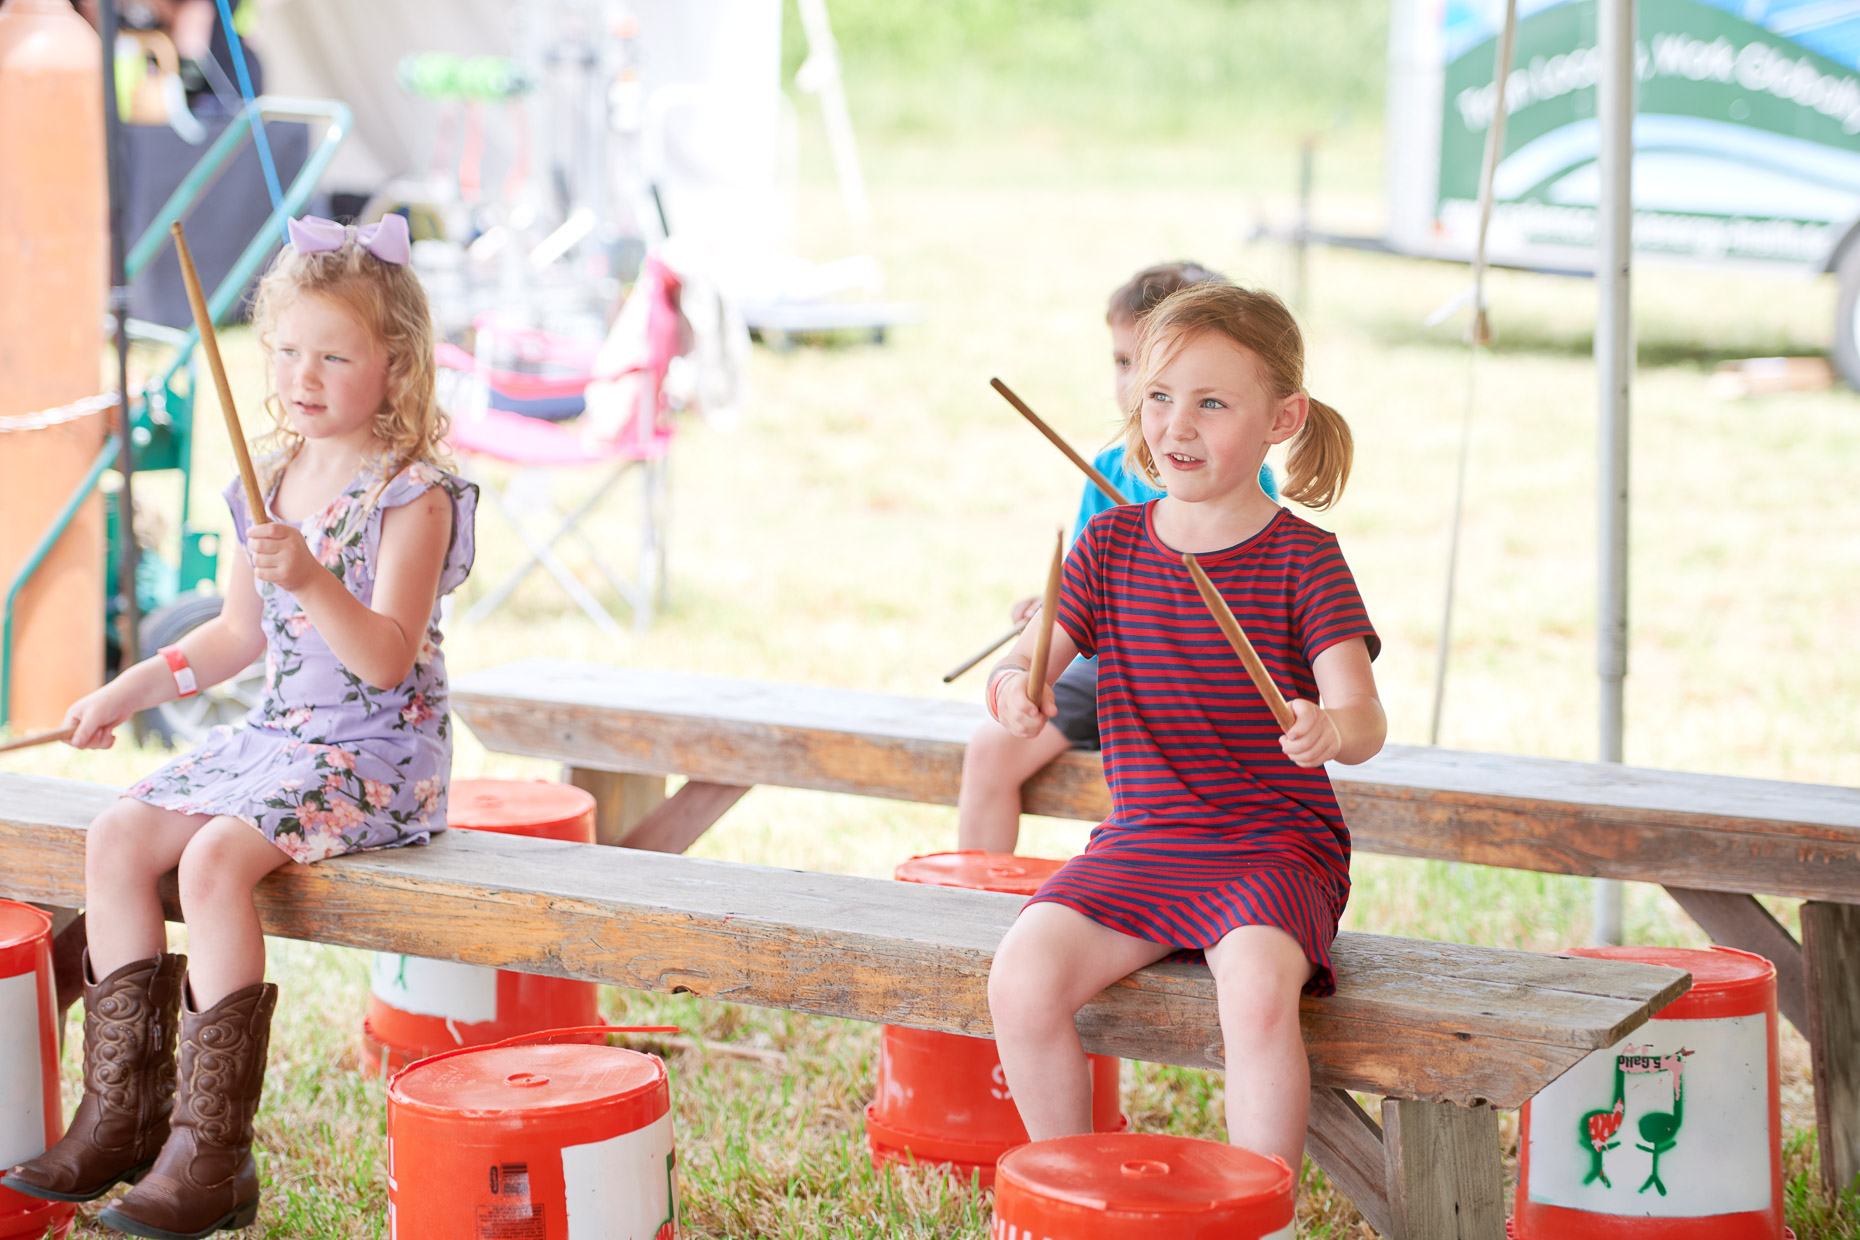 Music Festival Kids | Appel Farm Advertising